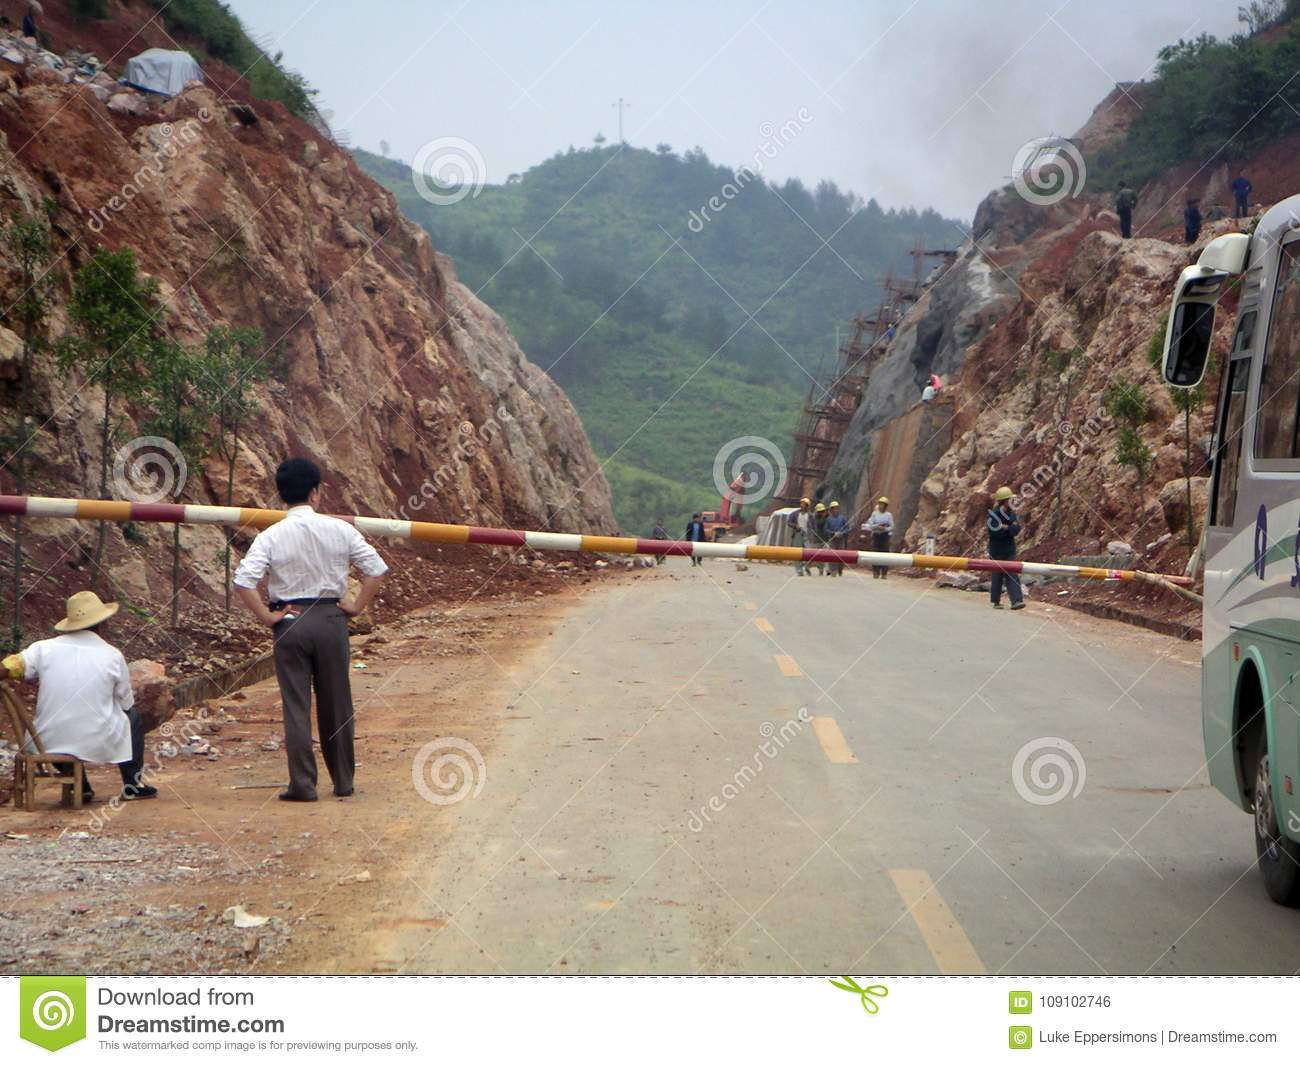 Manager observing road workers in China